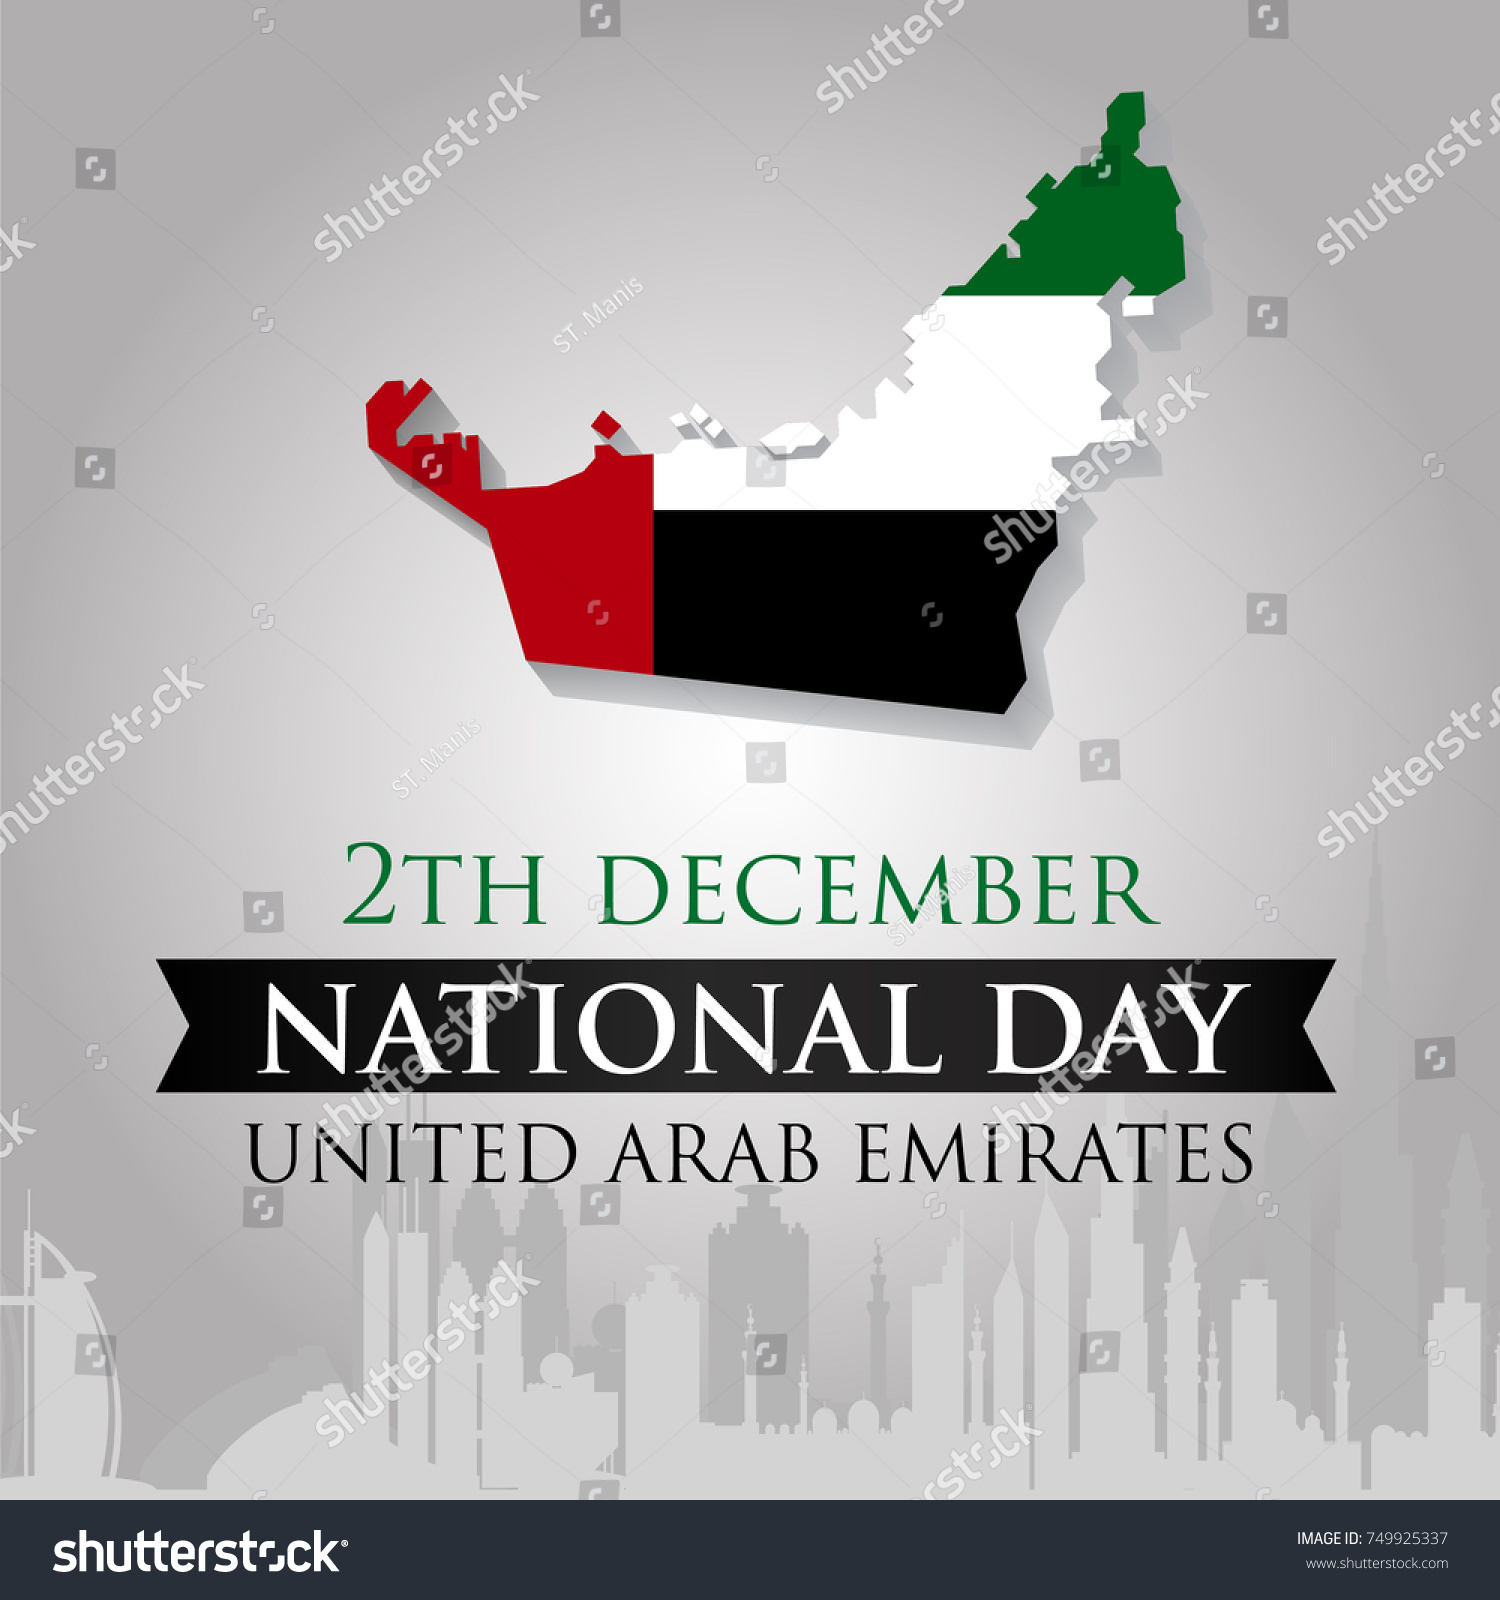 Greeting Card National Day United Emirates Stock Vector 749925337